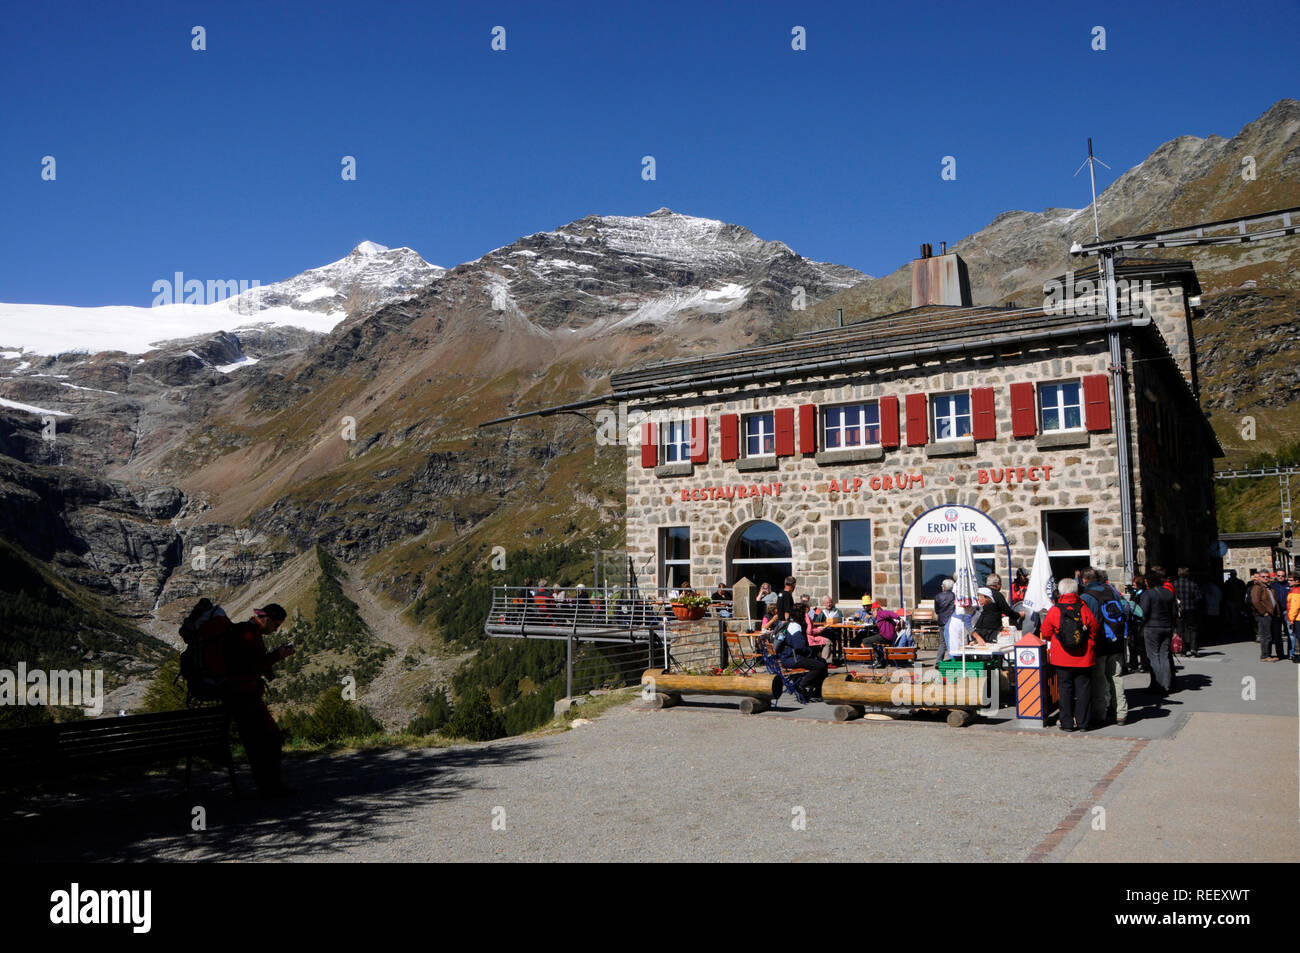 Mountain restaurant on Alp Grüm near Bernina Hospitz in the Swiss Alps - Stock Image